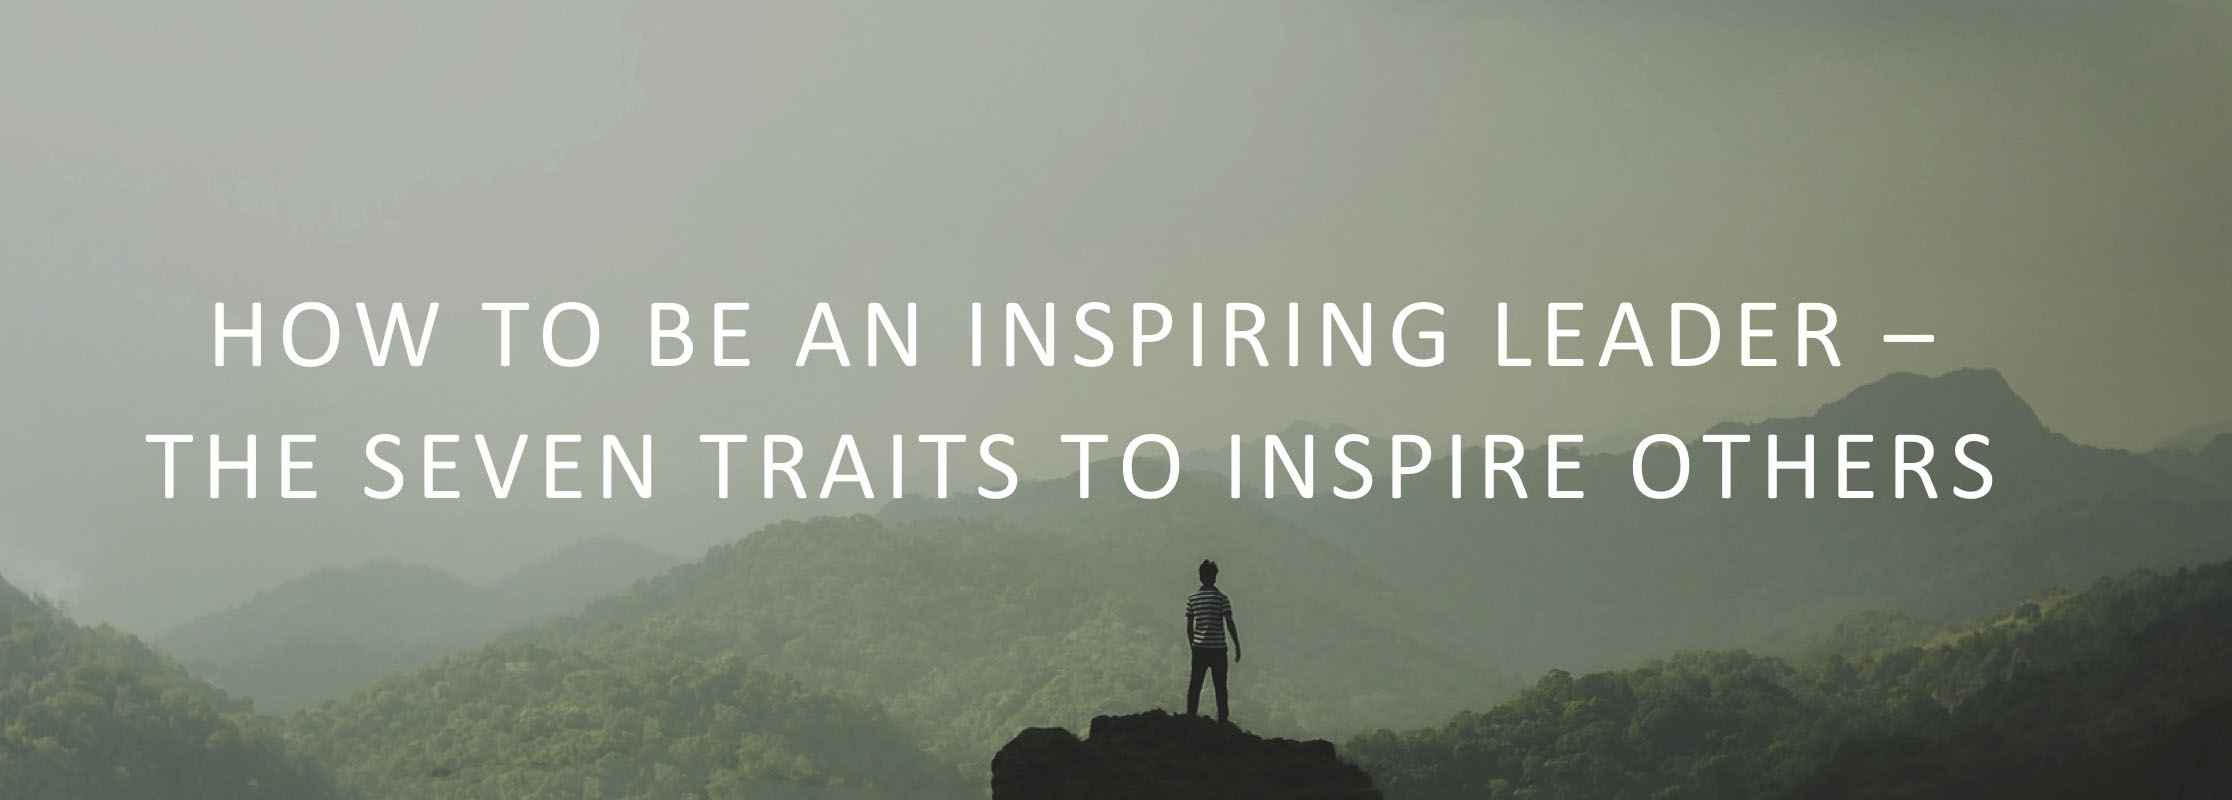 how-to-be-an-inspiring-leader